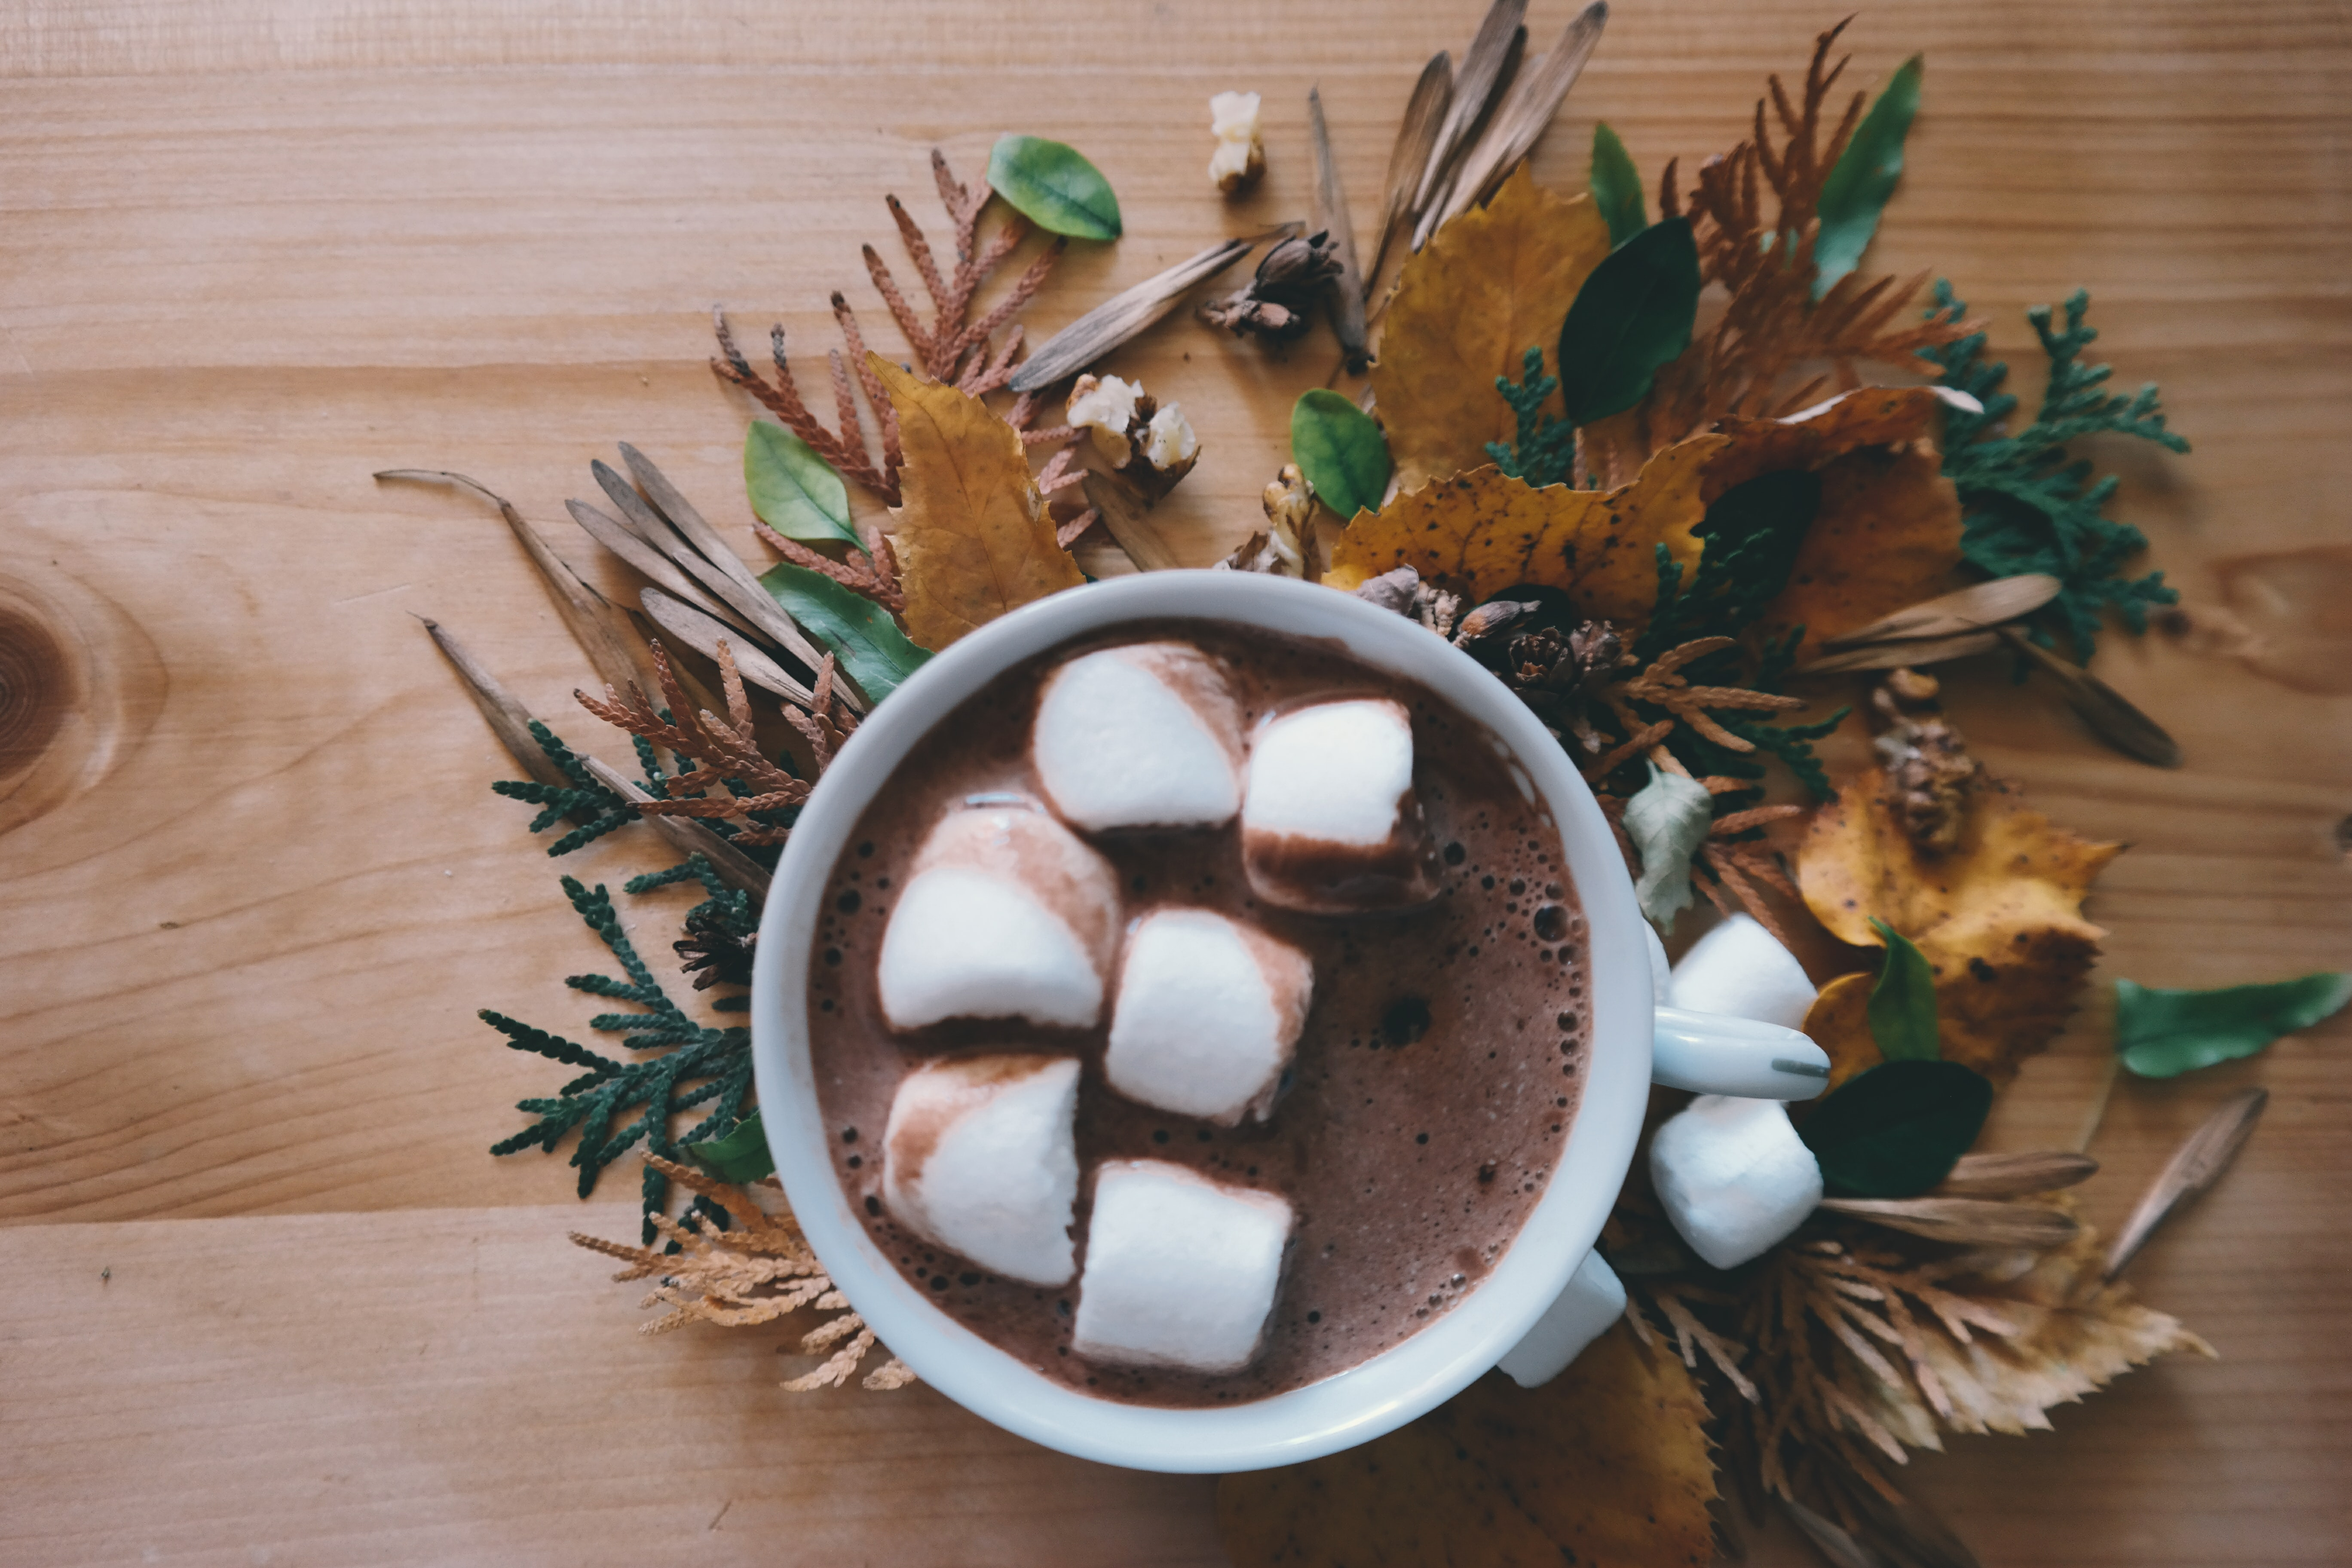 A cup of hot chocolate with large marshmallows.